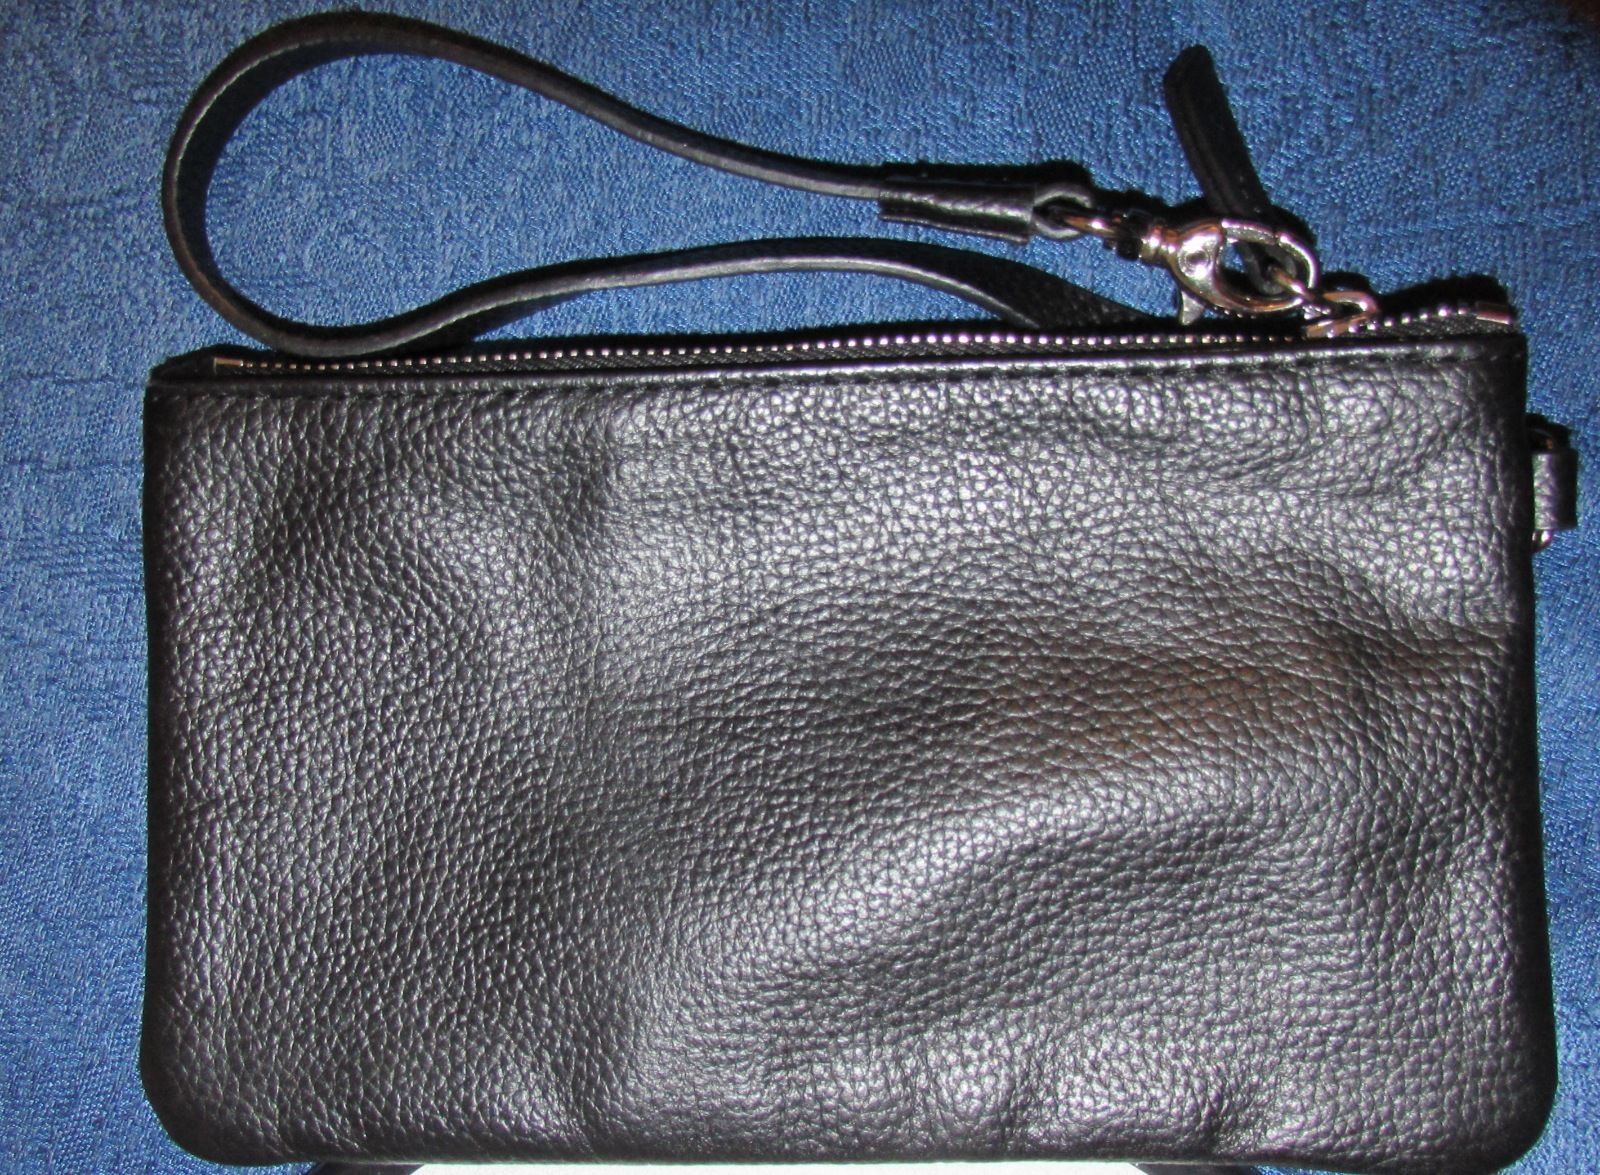 Patti for Hung On U Black Pebbled Grained Genuine Leather Wristlet Small